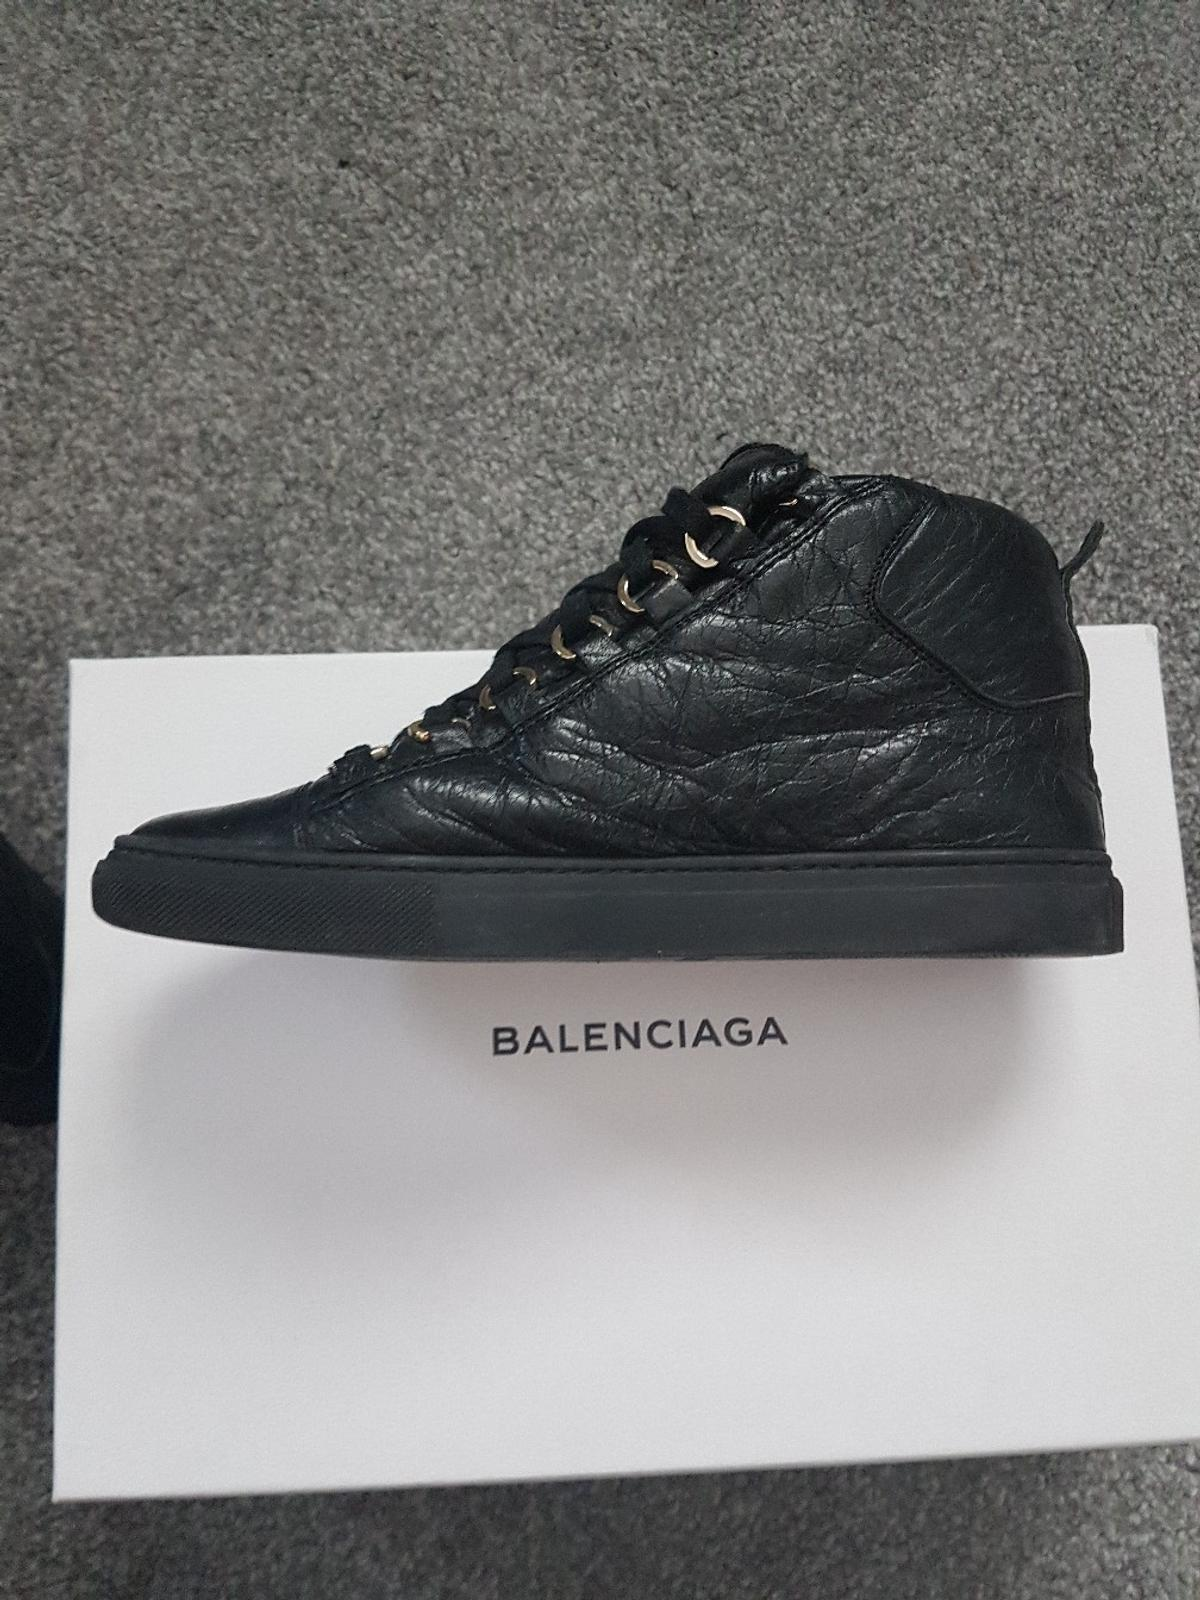 Boys balenciaga shoes in L25 Liverpool for £180.00 for sale